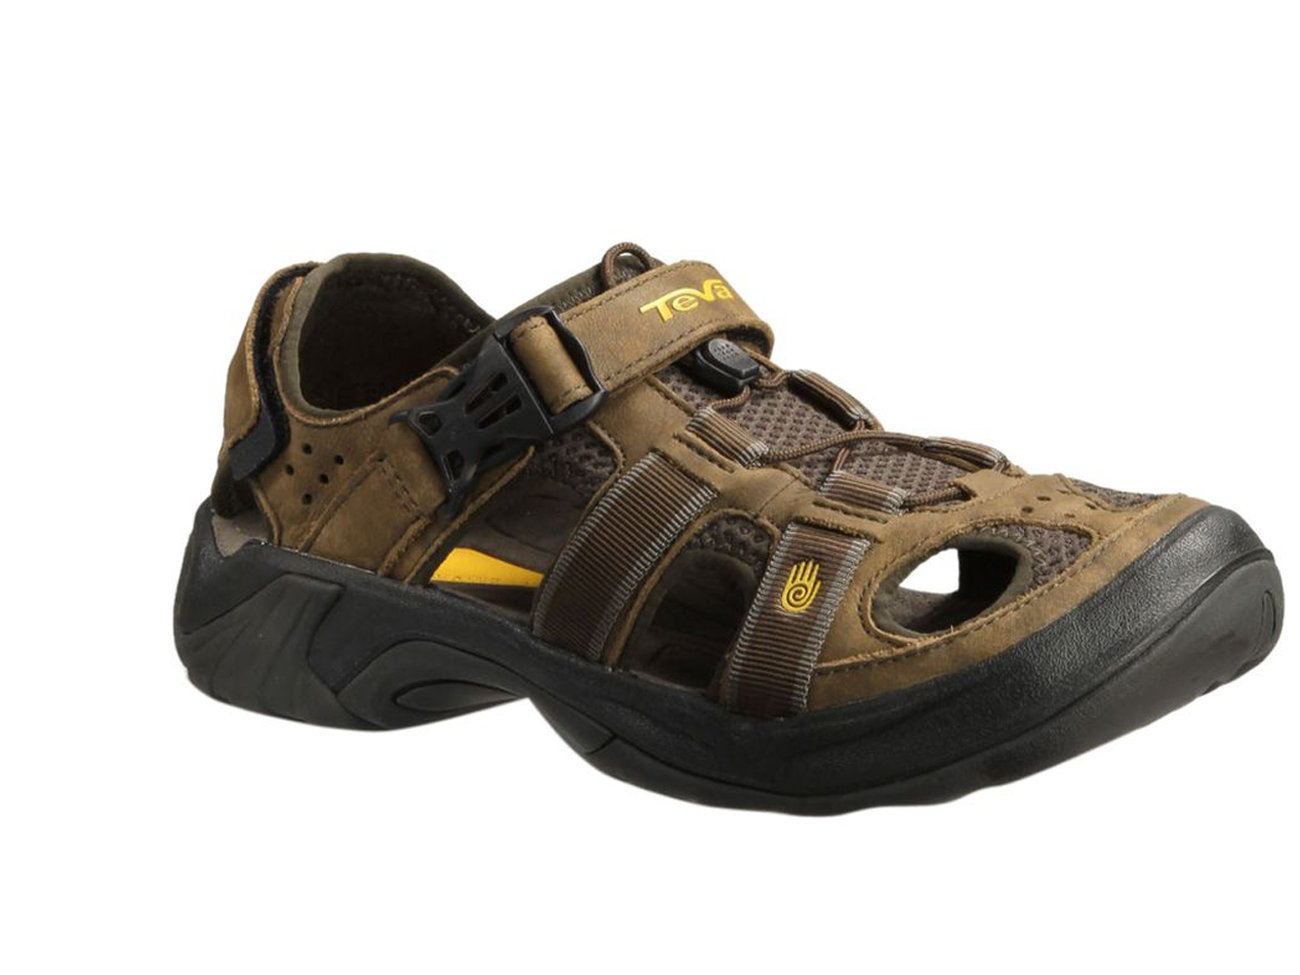 39b00a17e3e Best Hiking Sandals for Men | Travel + Leisure